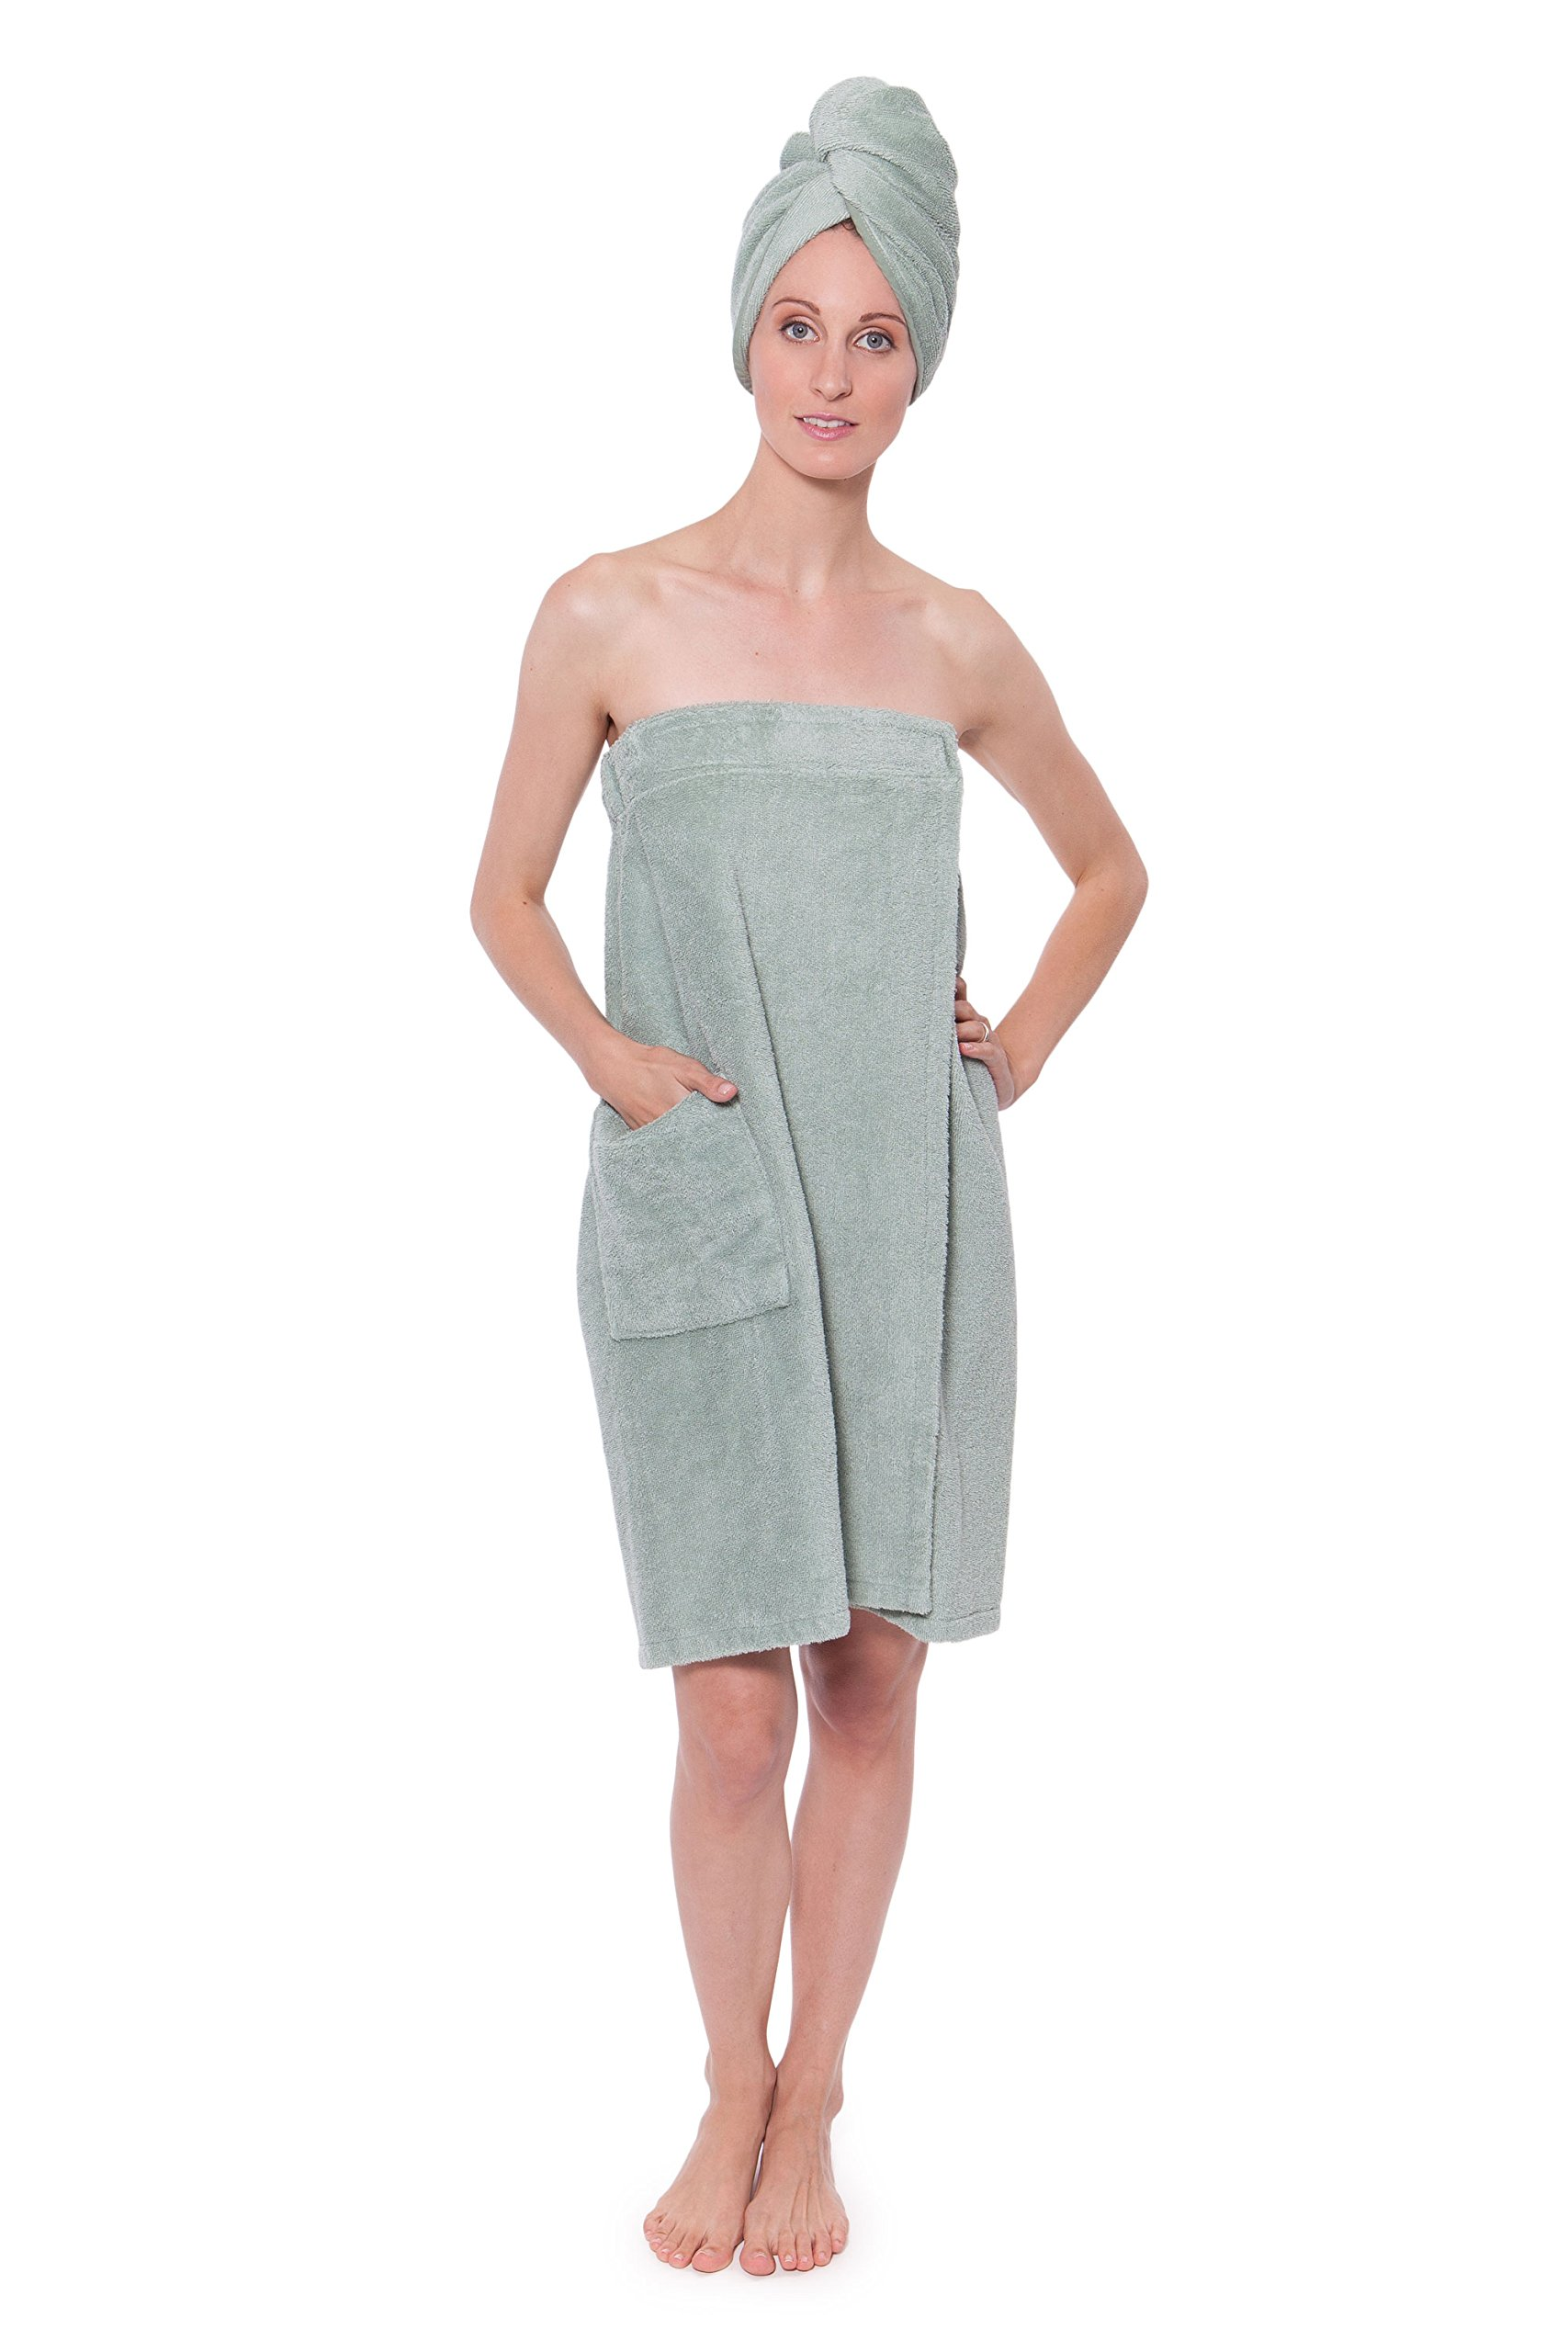 Texere Women's Bamboo Spa Wrap Set (Lily Green, Large/X-Large) Presents for Ladies and Teens Who Have Everything WB9903-LGN-LXL